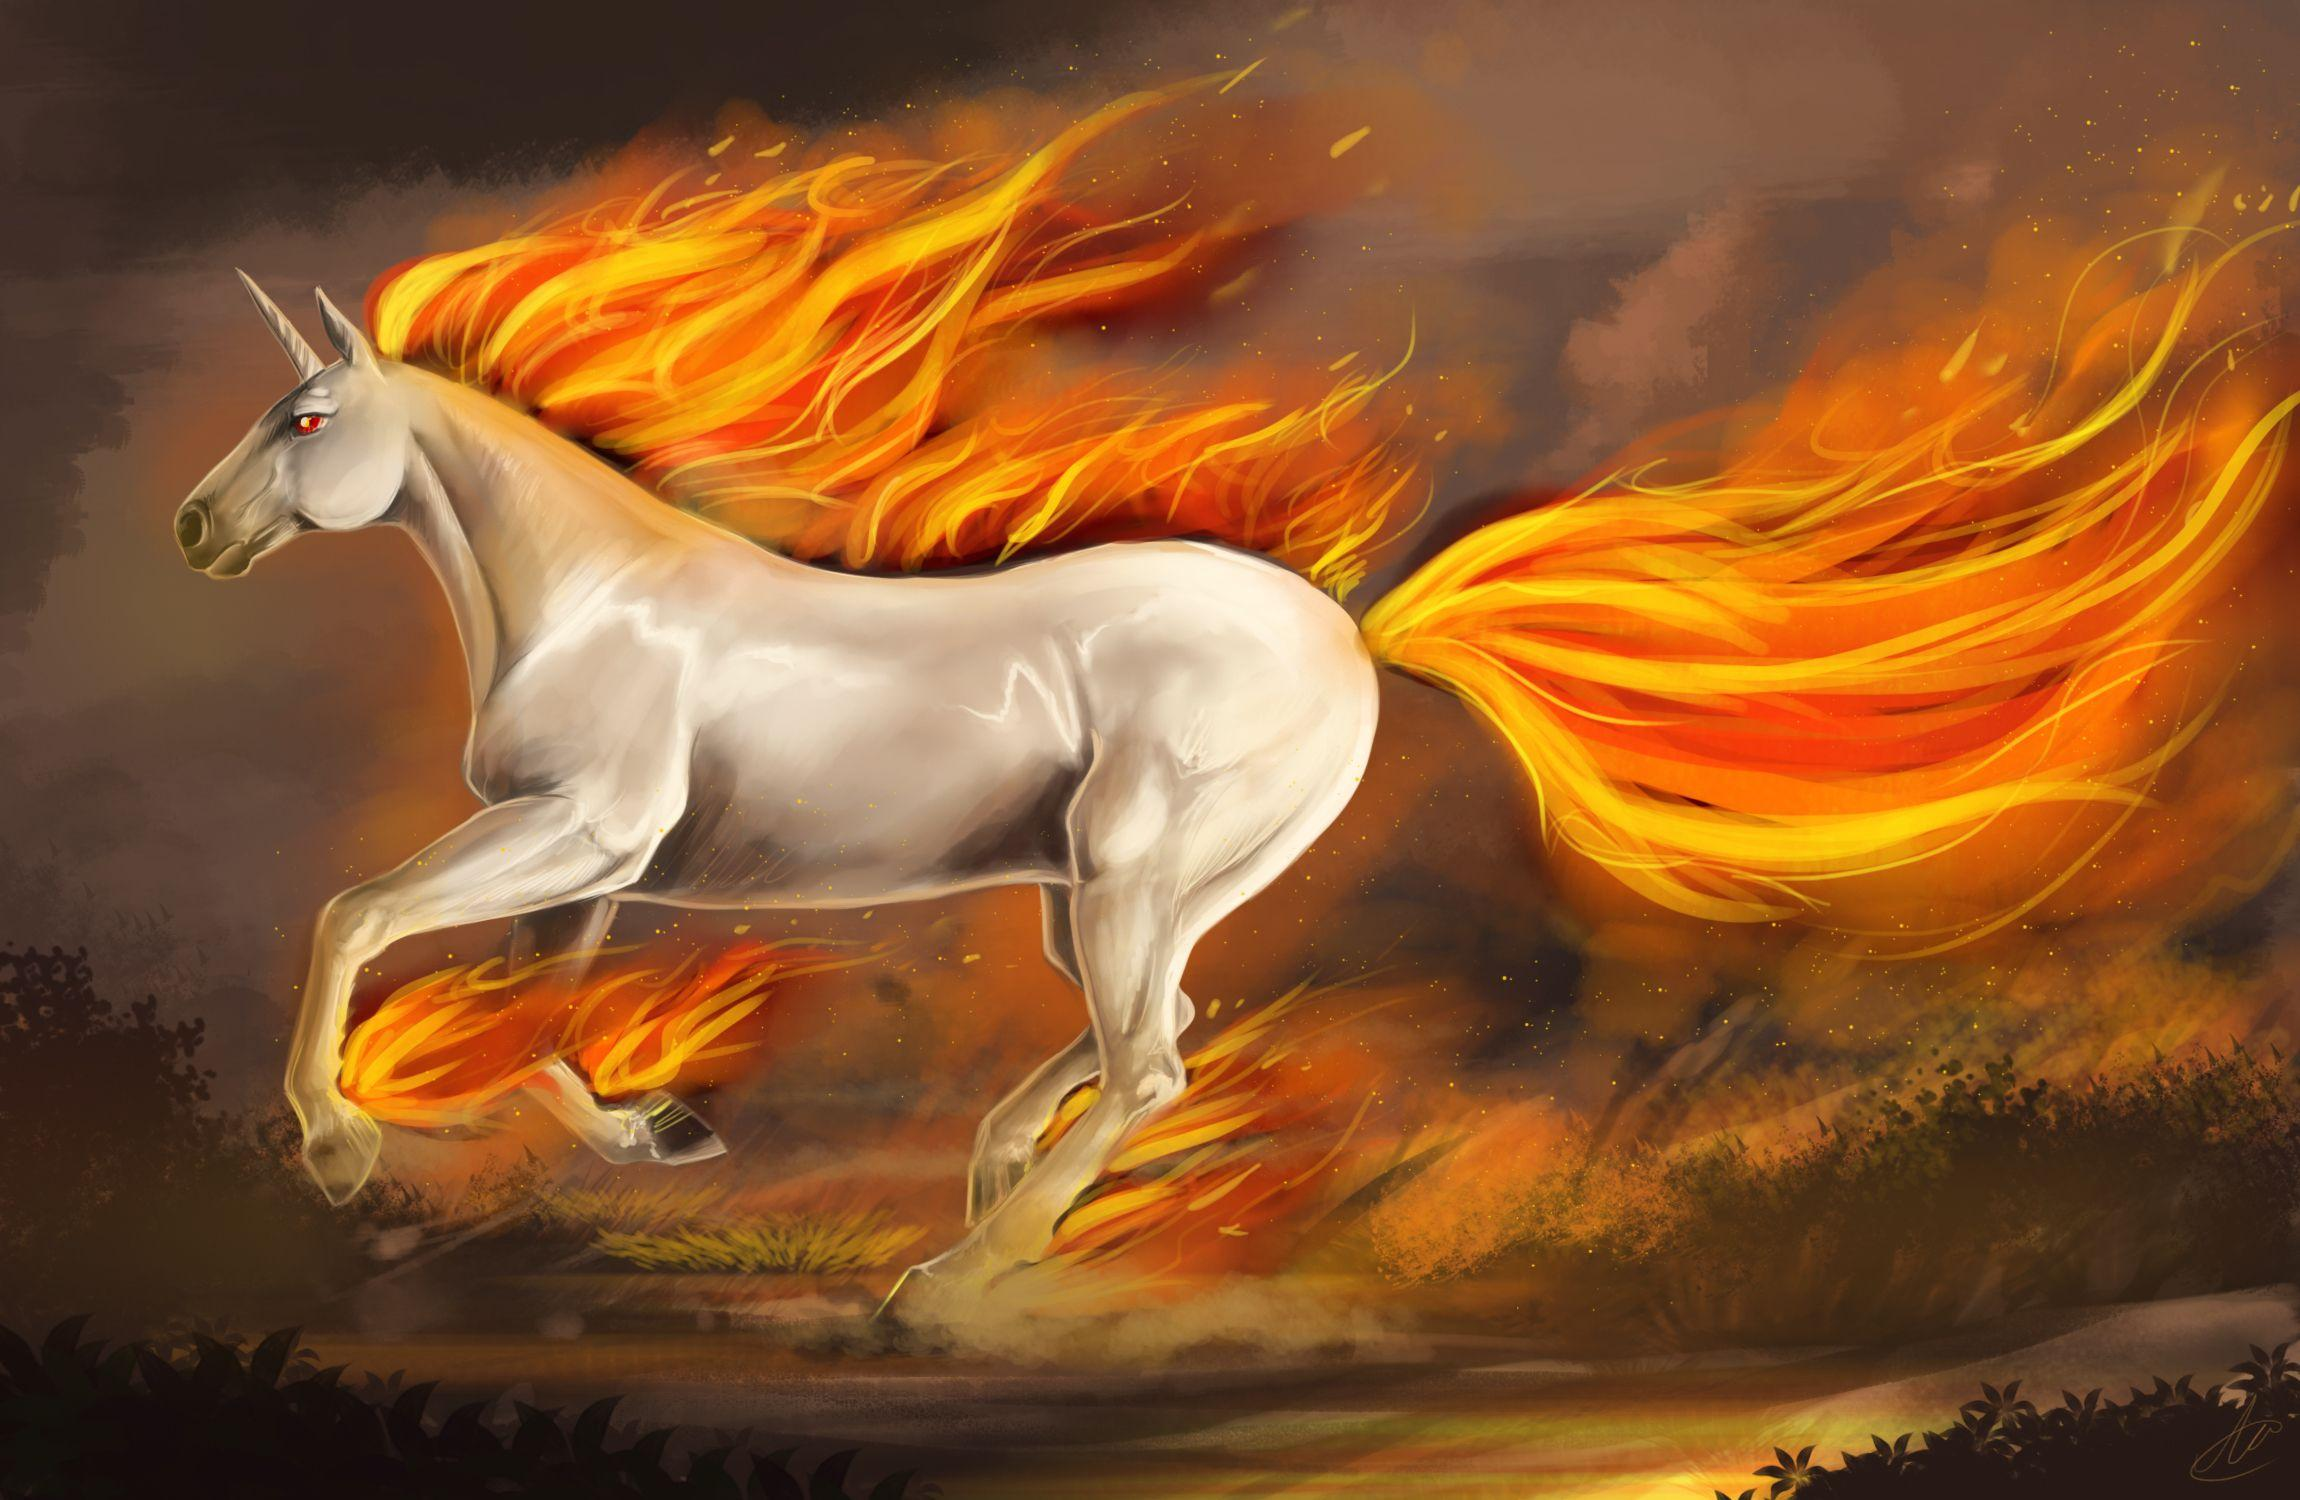 Unicorn wallpapers and images wallpapers pictures photos | HD ...